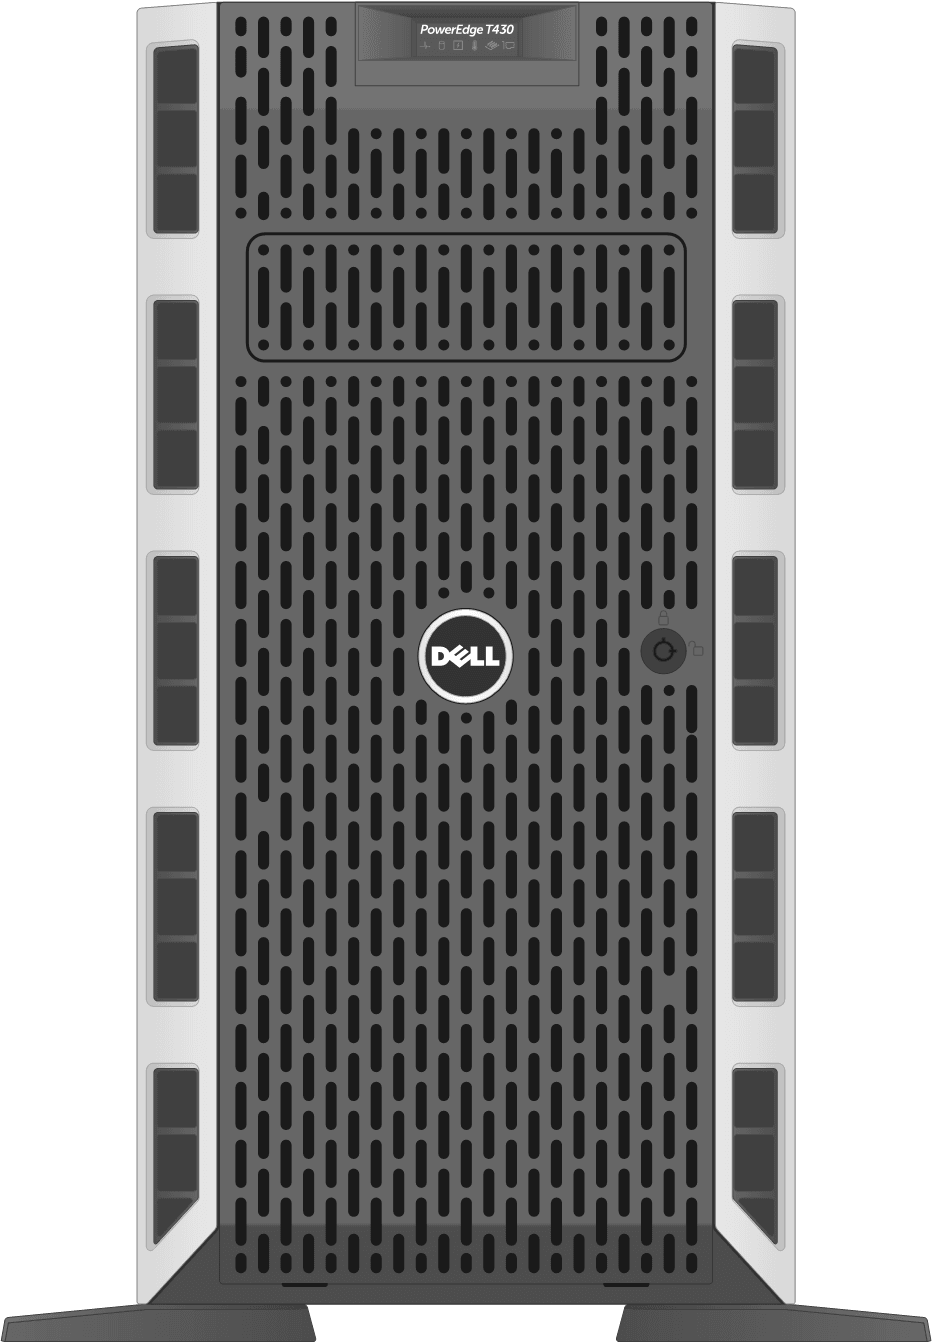 dell-poweredge-towerservers_T430-Cbl-Front-Bezel